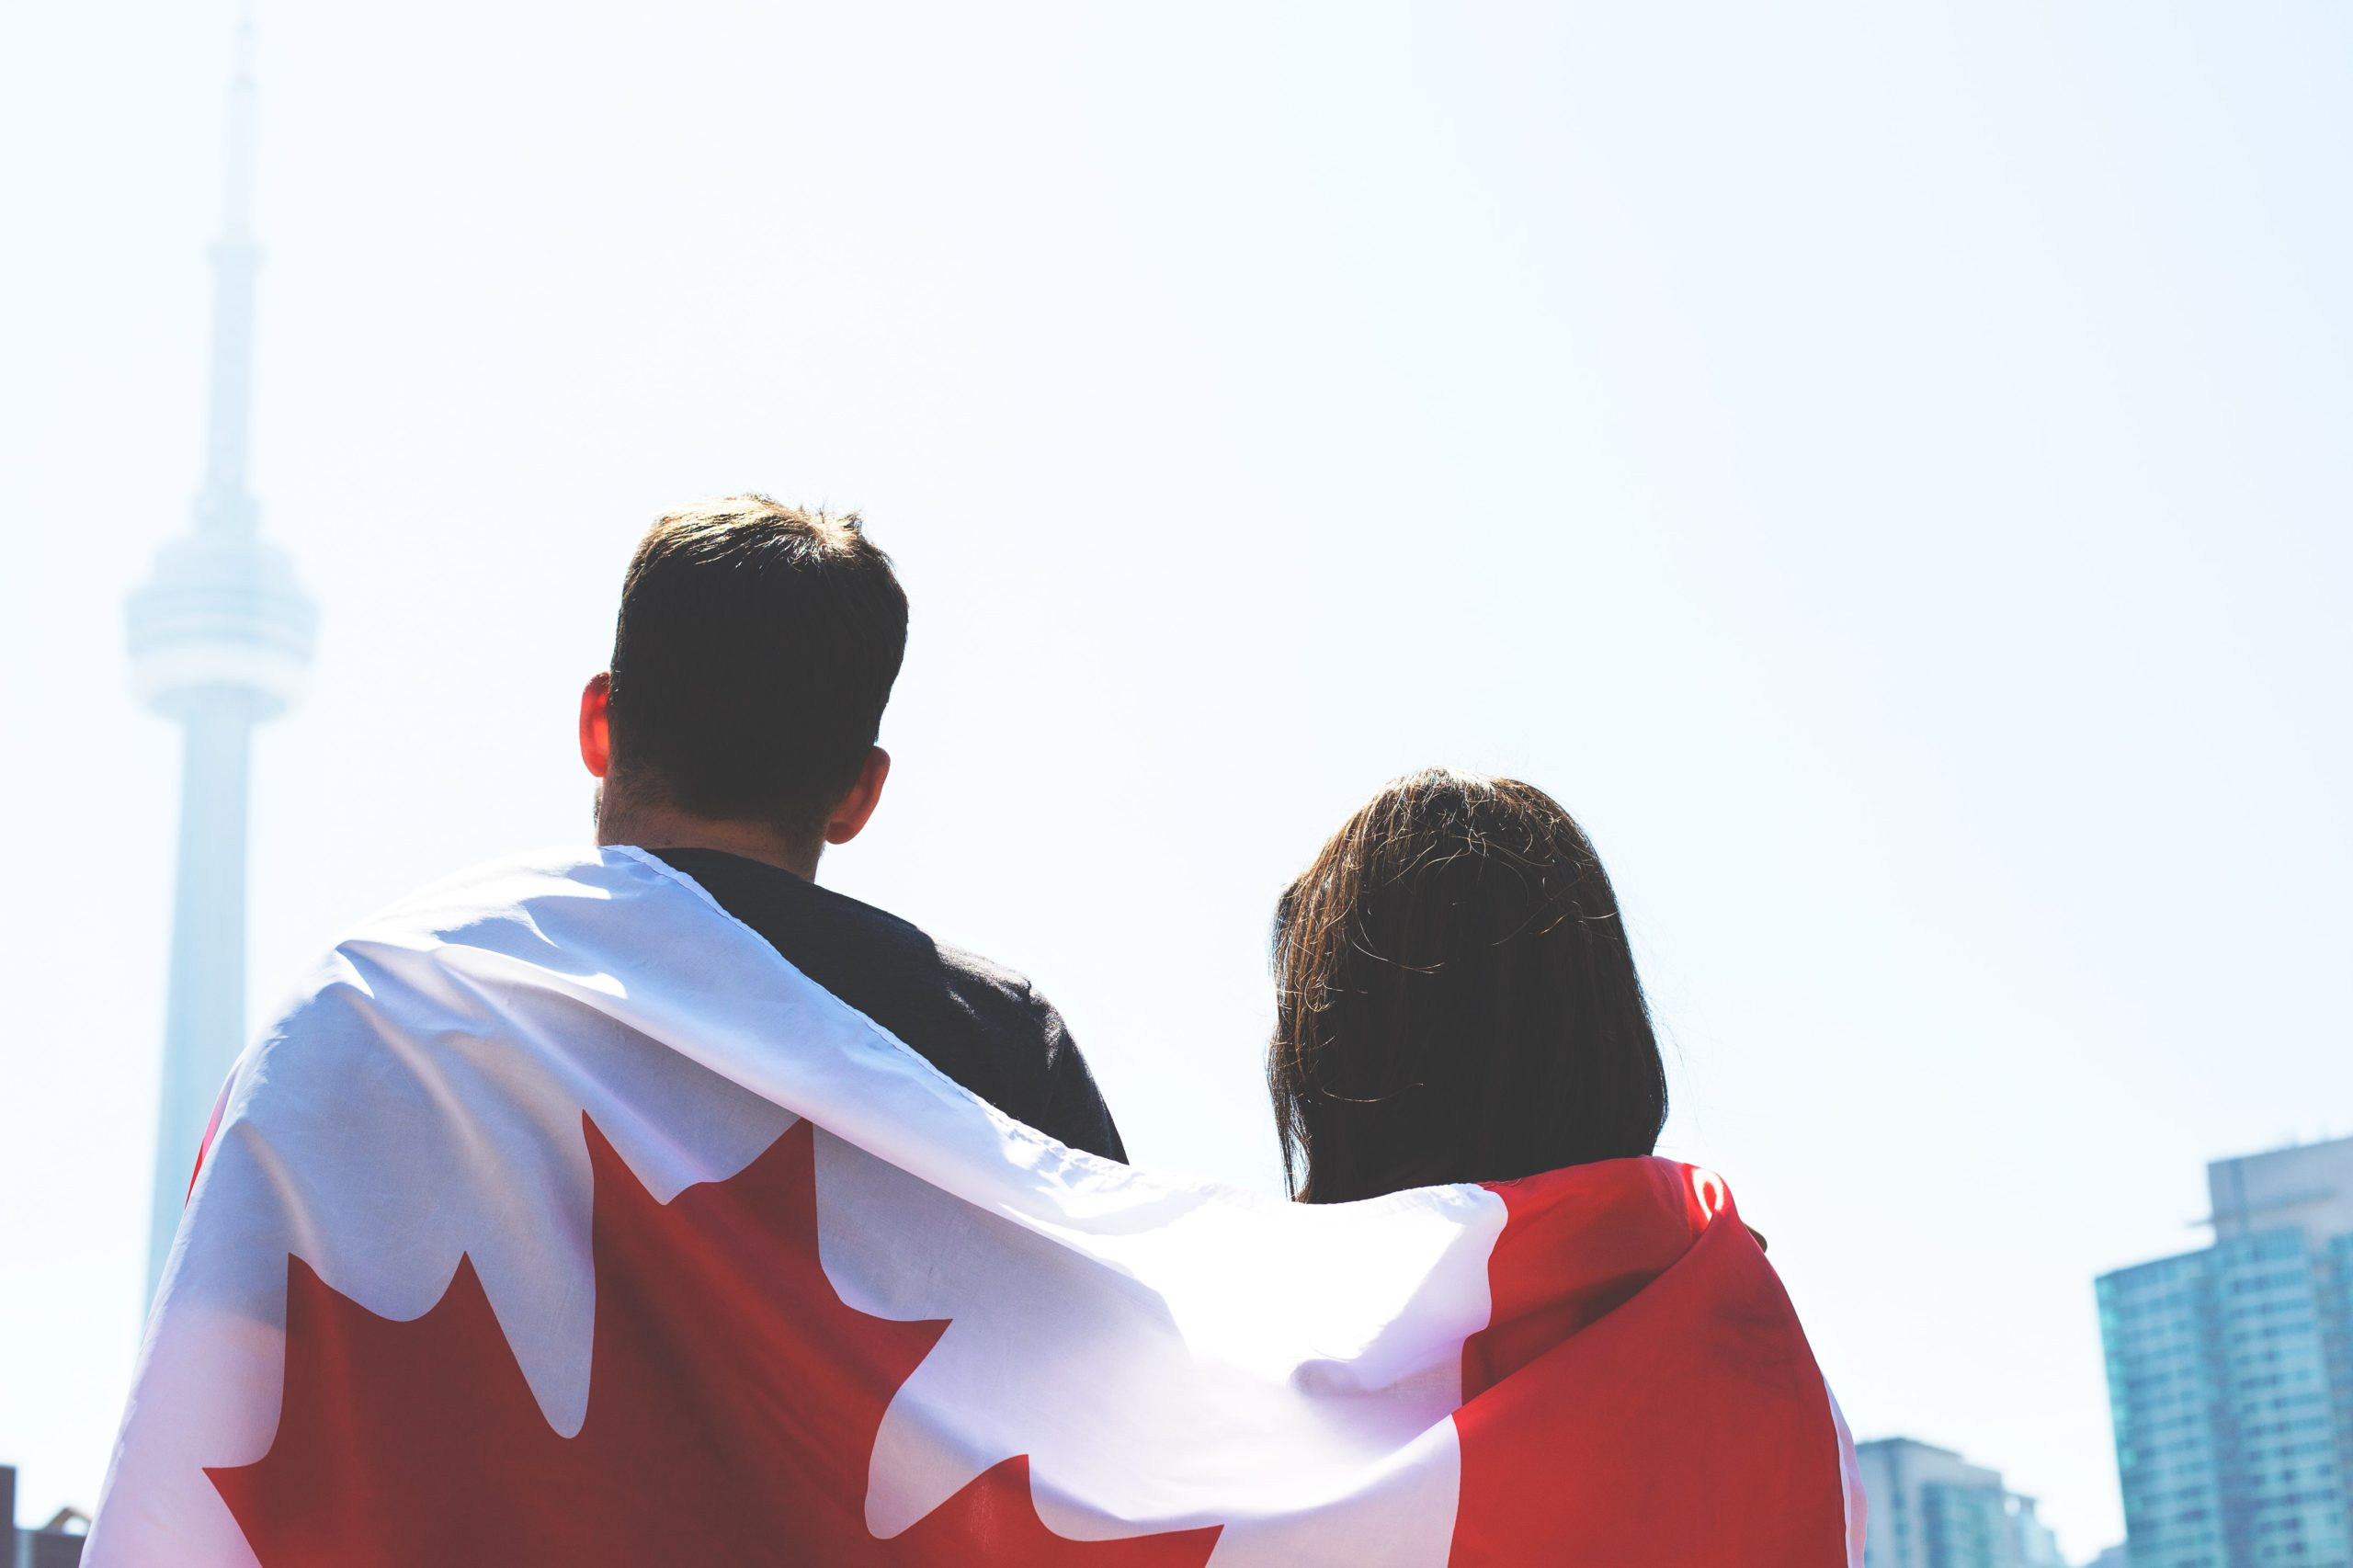 Could wearing a Canadian flag, Toronto